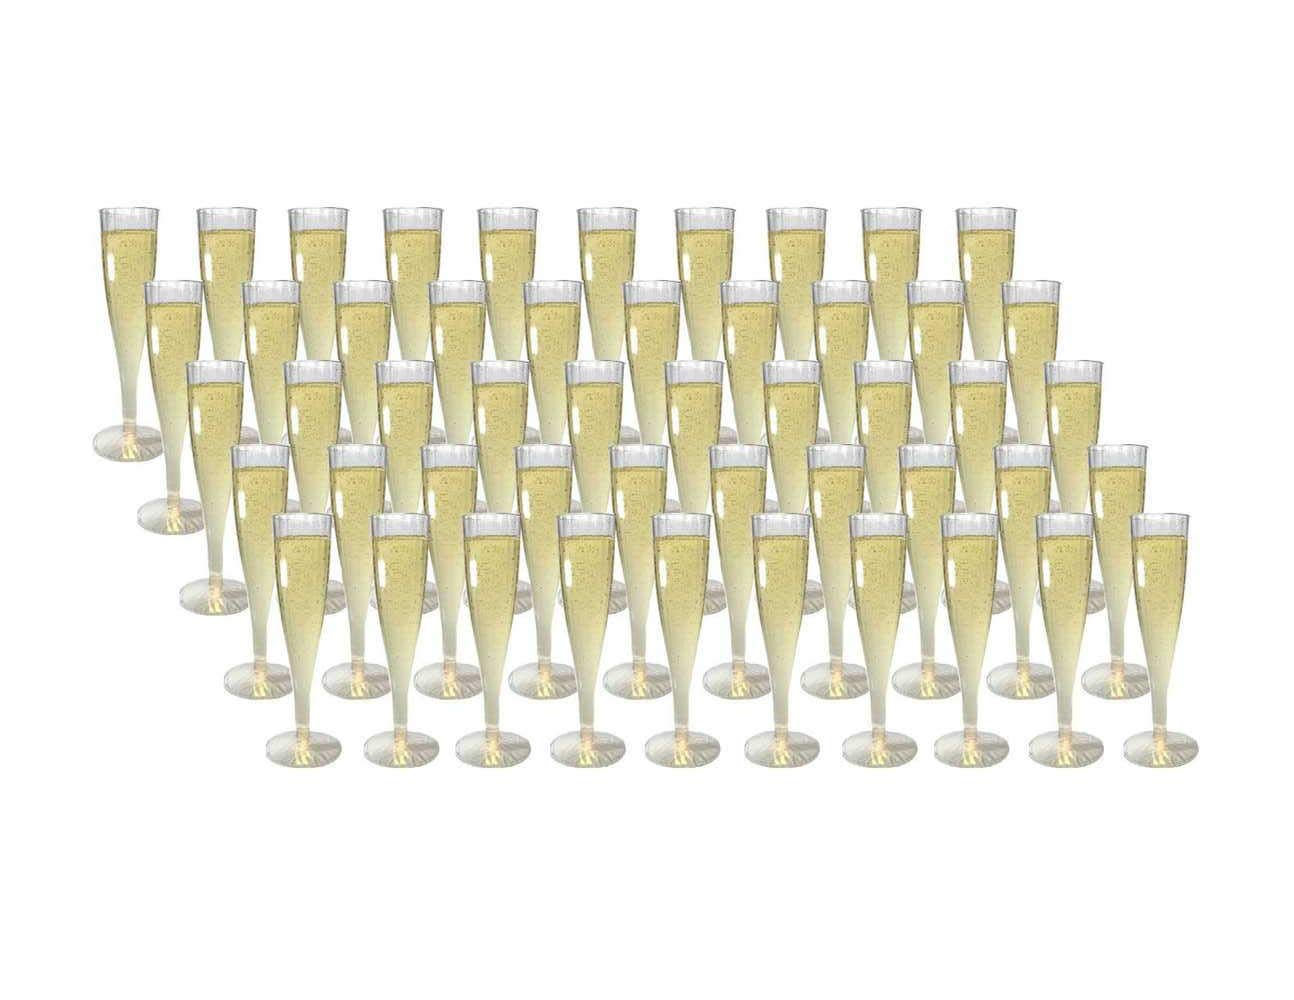 Platers 50 set Plastic Champagne Glasses Flutes for Martini Margarita Wine Disposable for Parties